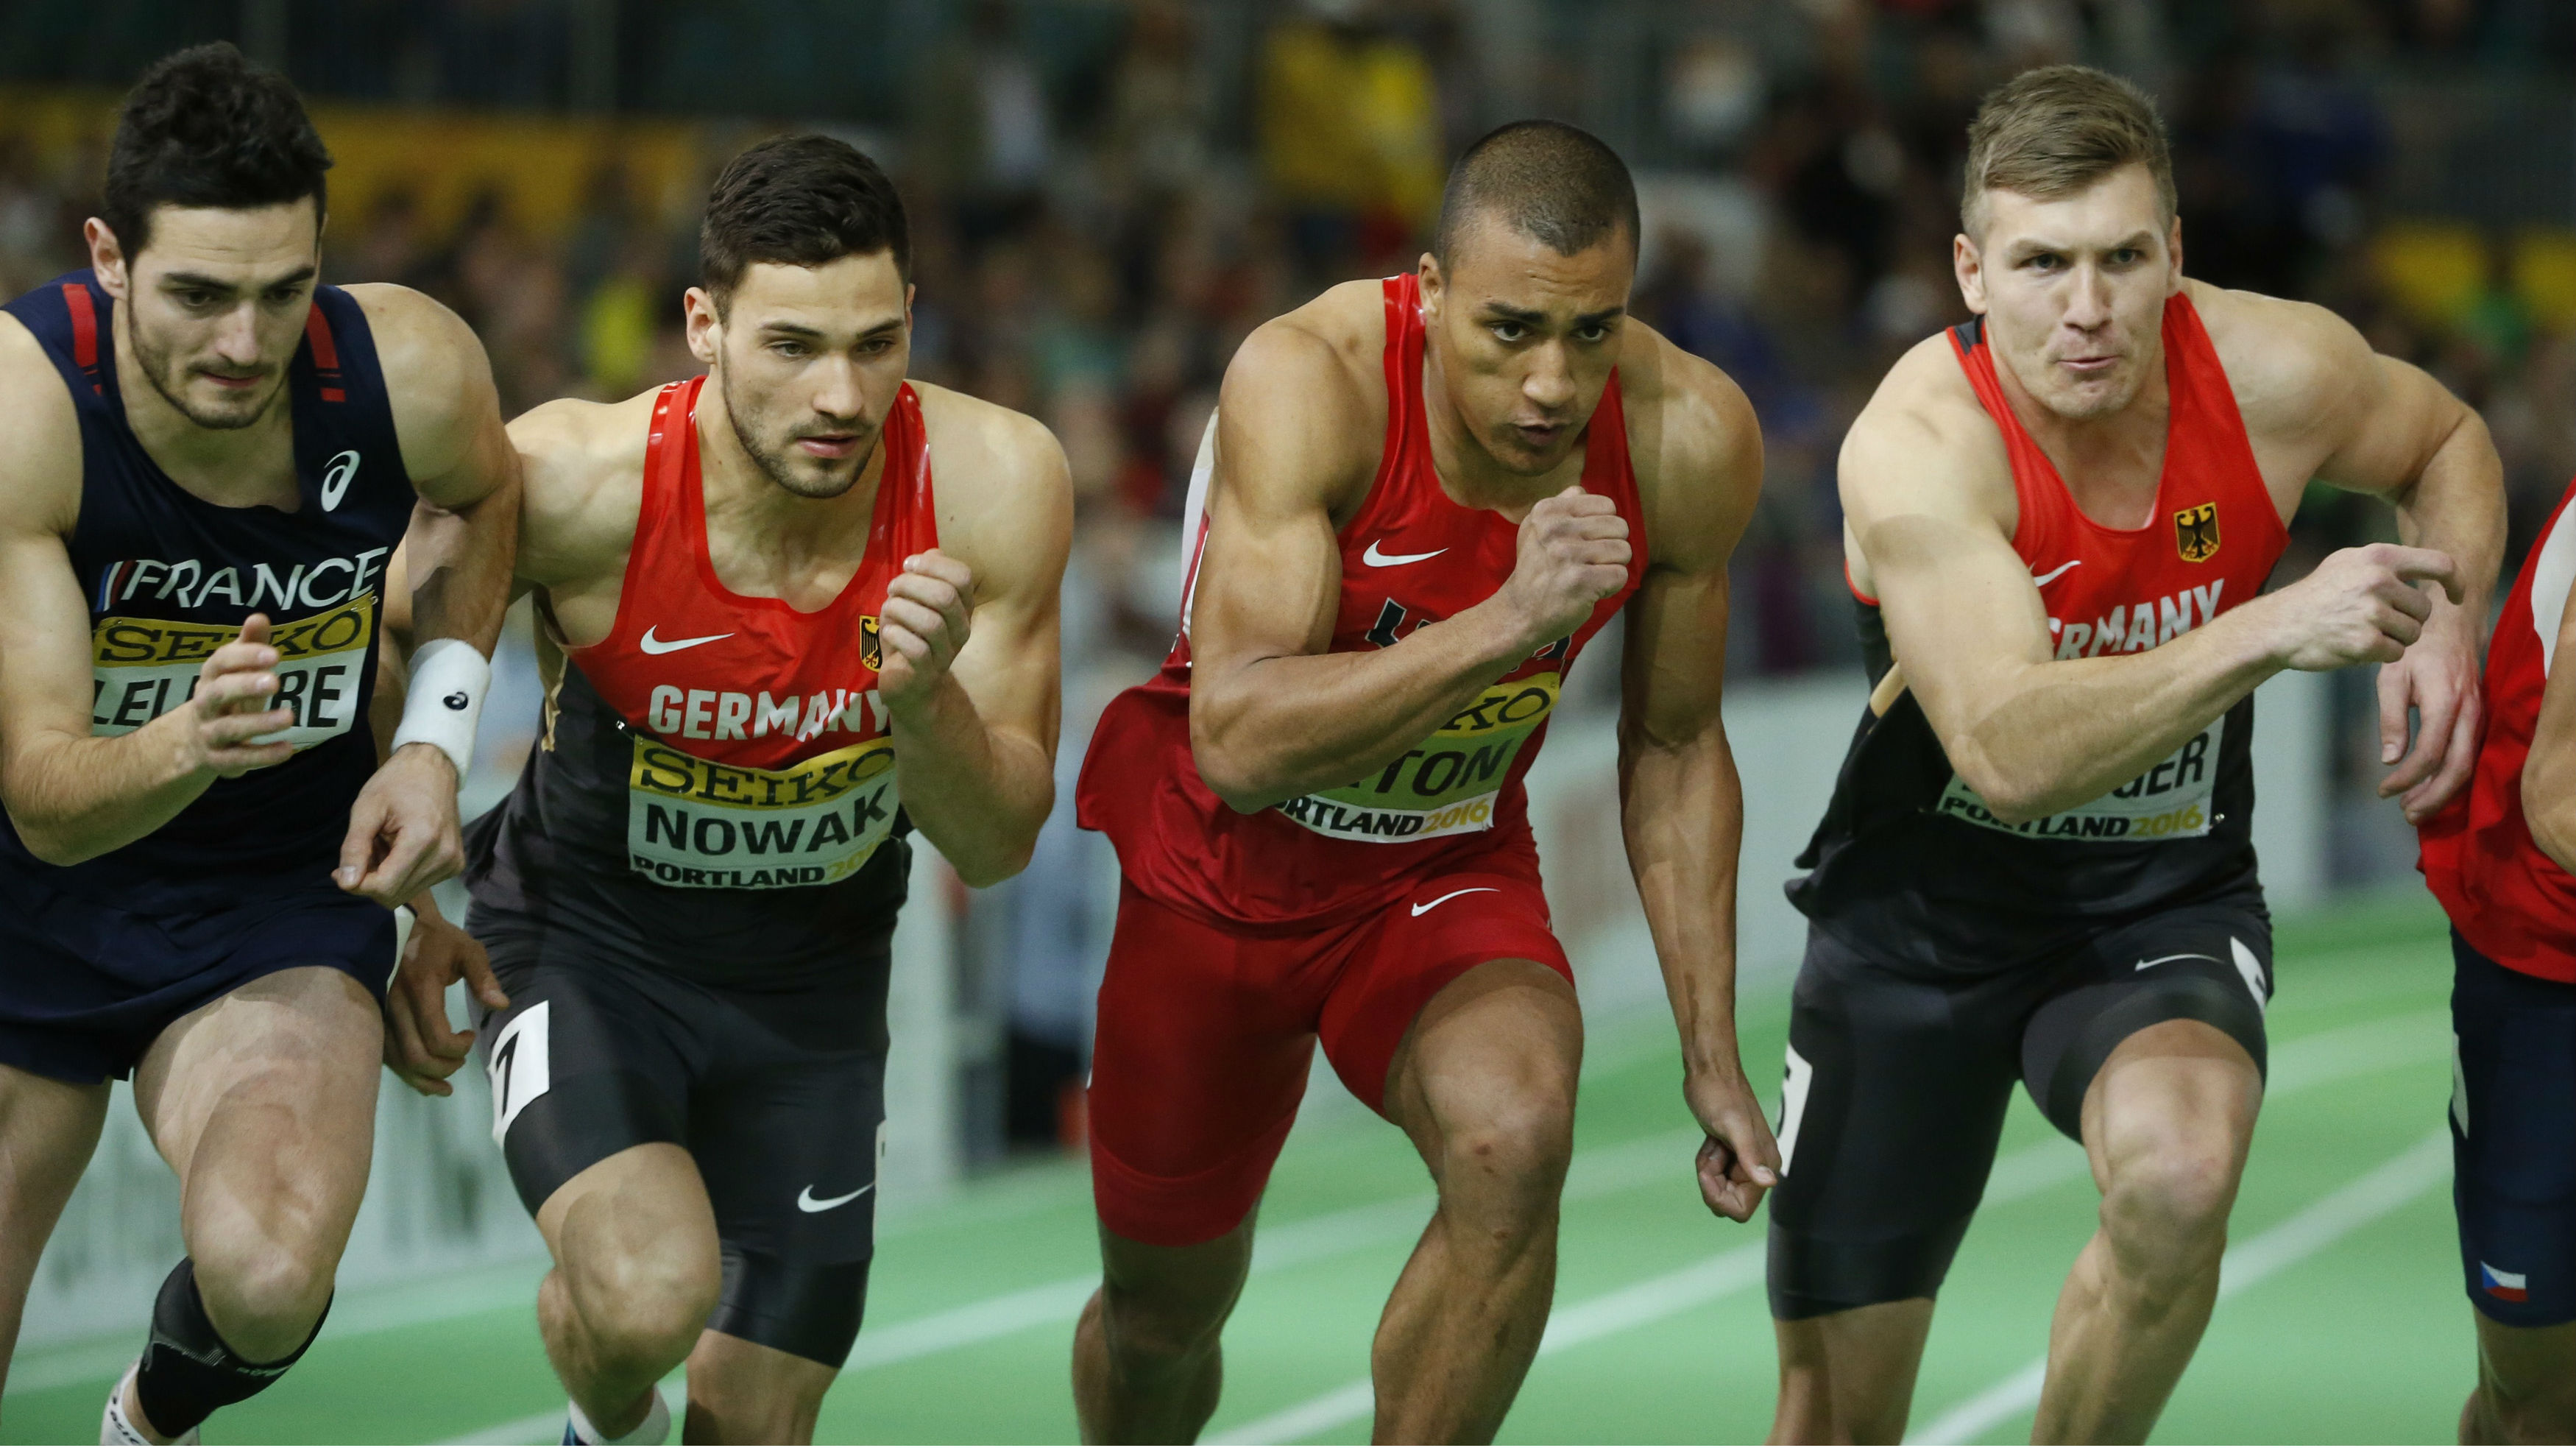 Gold medalist Ashton Eaton of the U.S. (2nd from R) starts the 1000 meters race portion of the men's heptathlon during the IAAF World Indoor Athletics Championships in Portland, Oregon March 19, 2016.